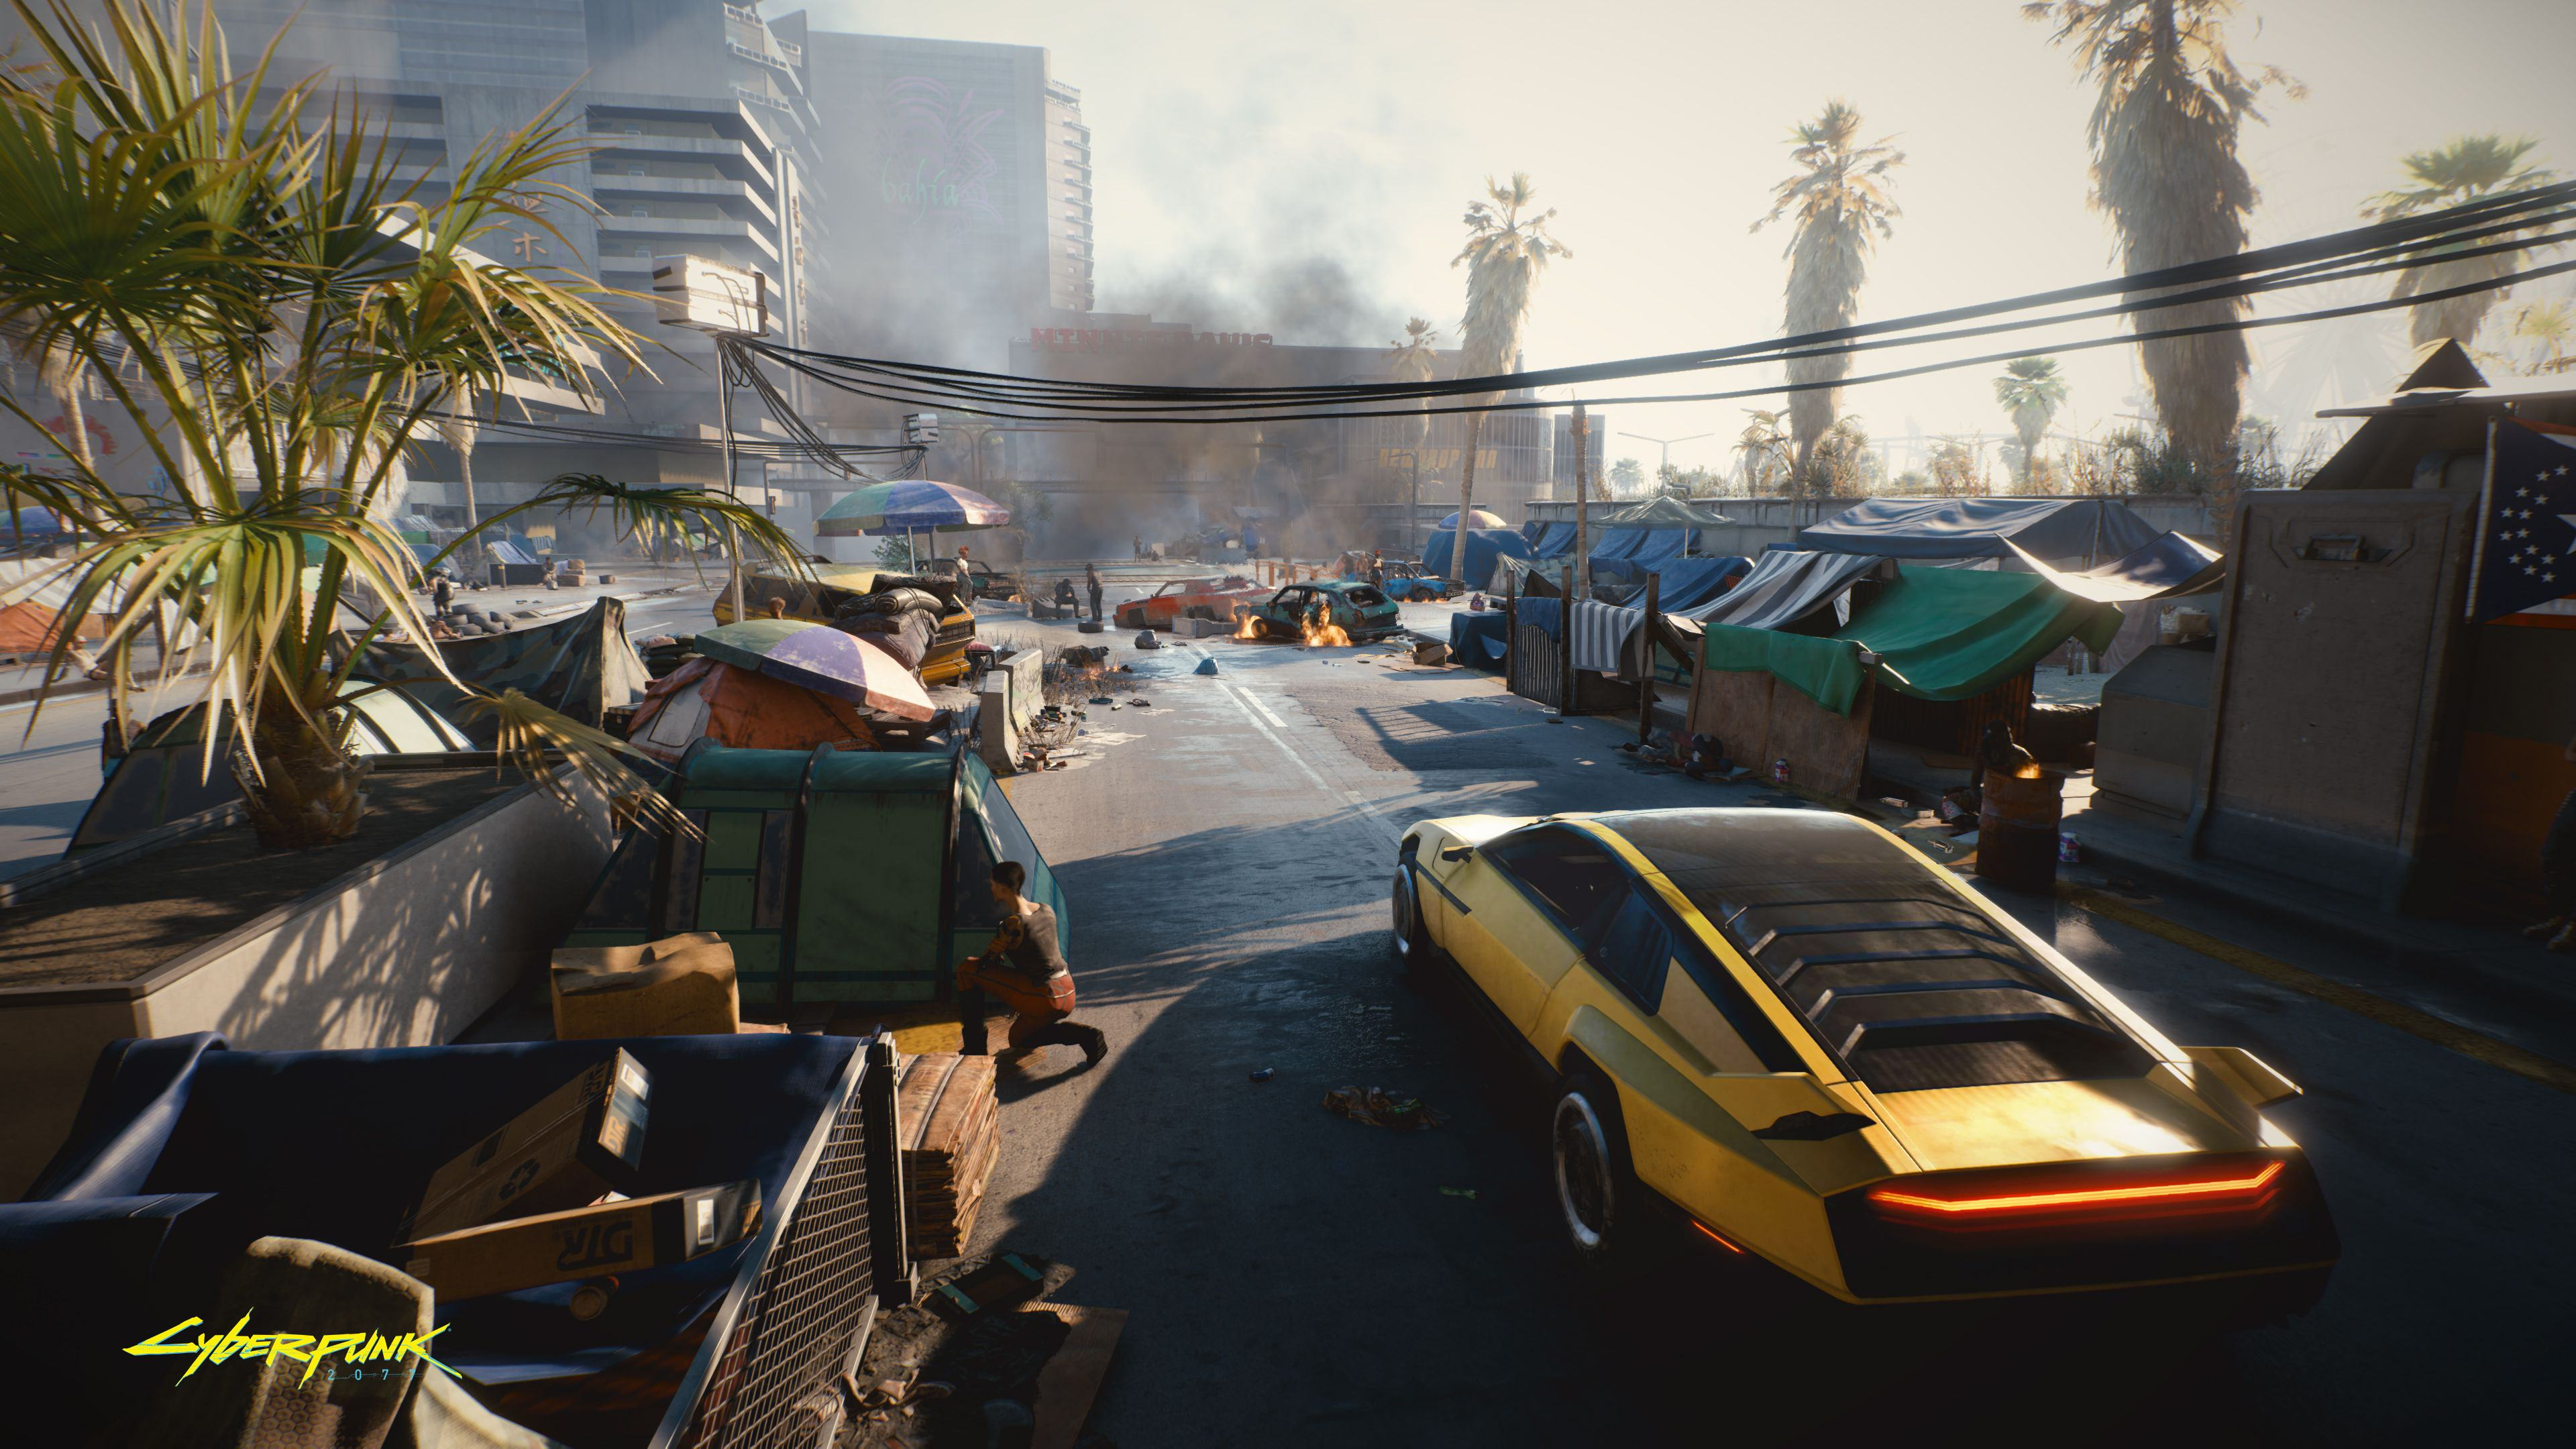 Cyberpunk 2077's map will be 1.5 times larger than GTA 5's ...